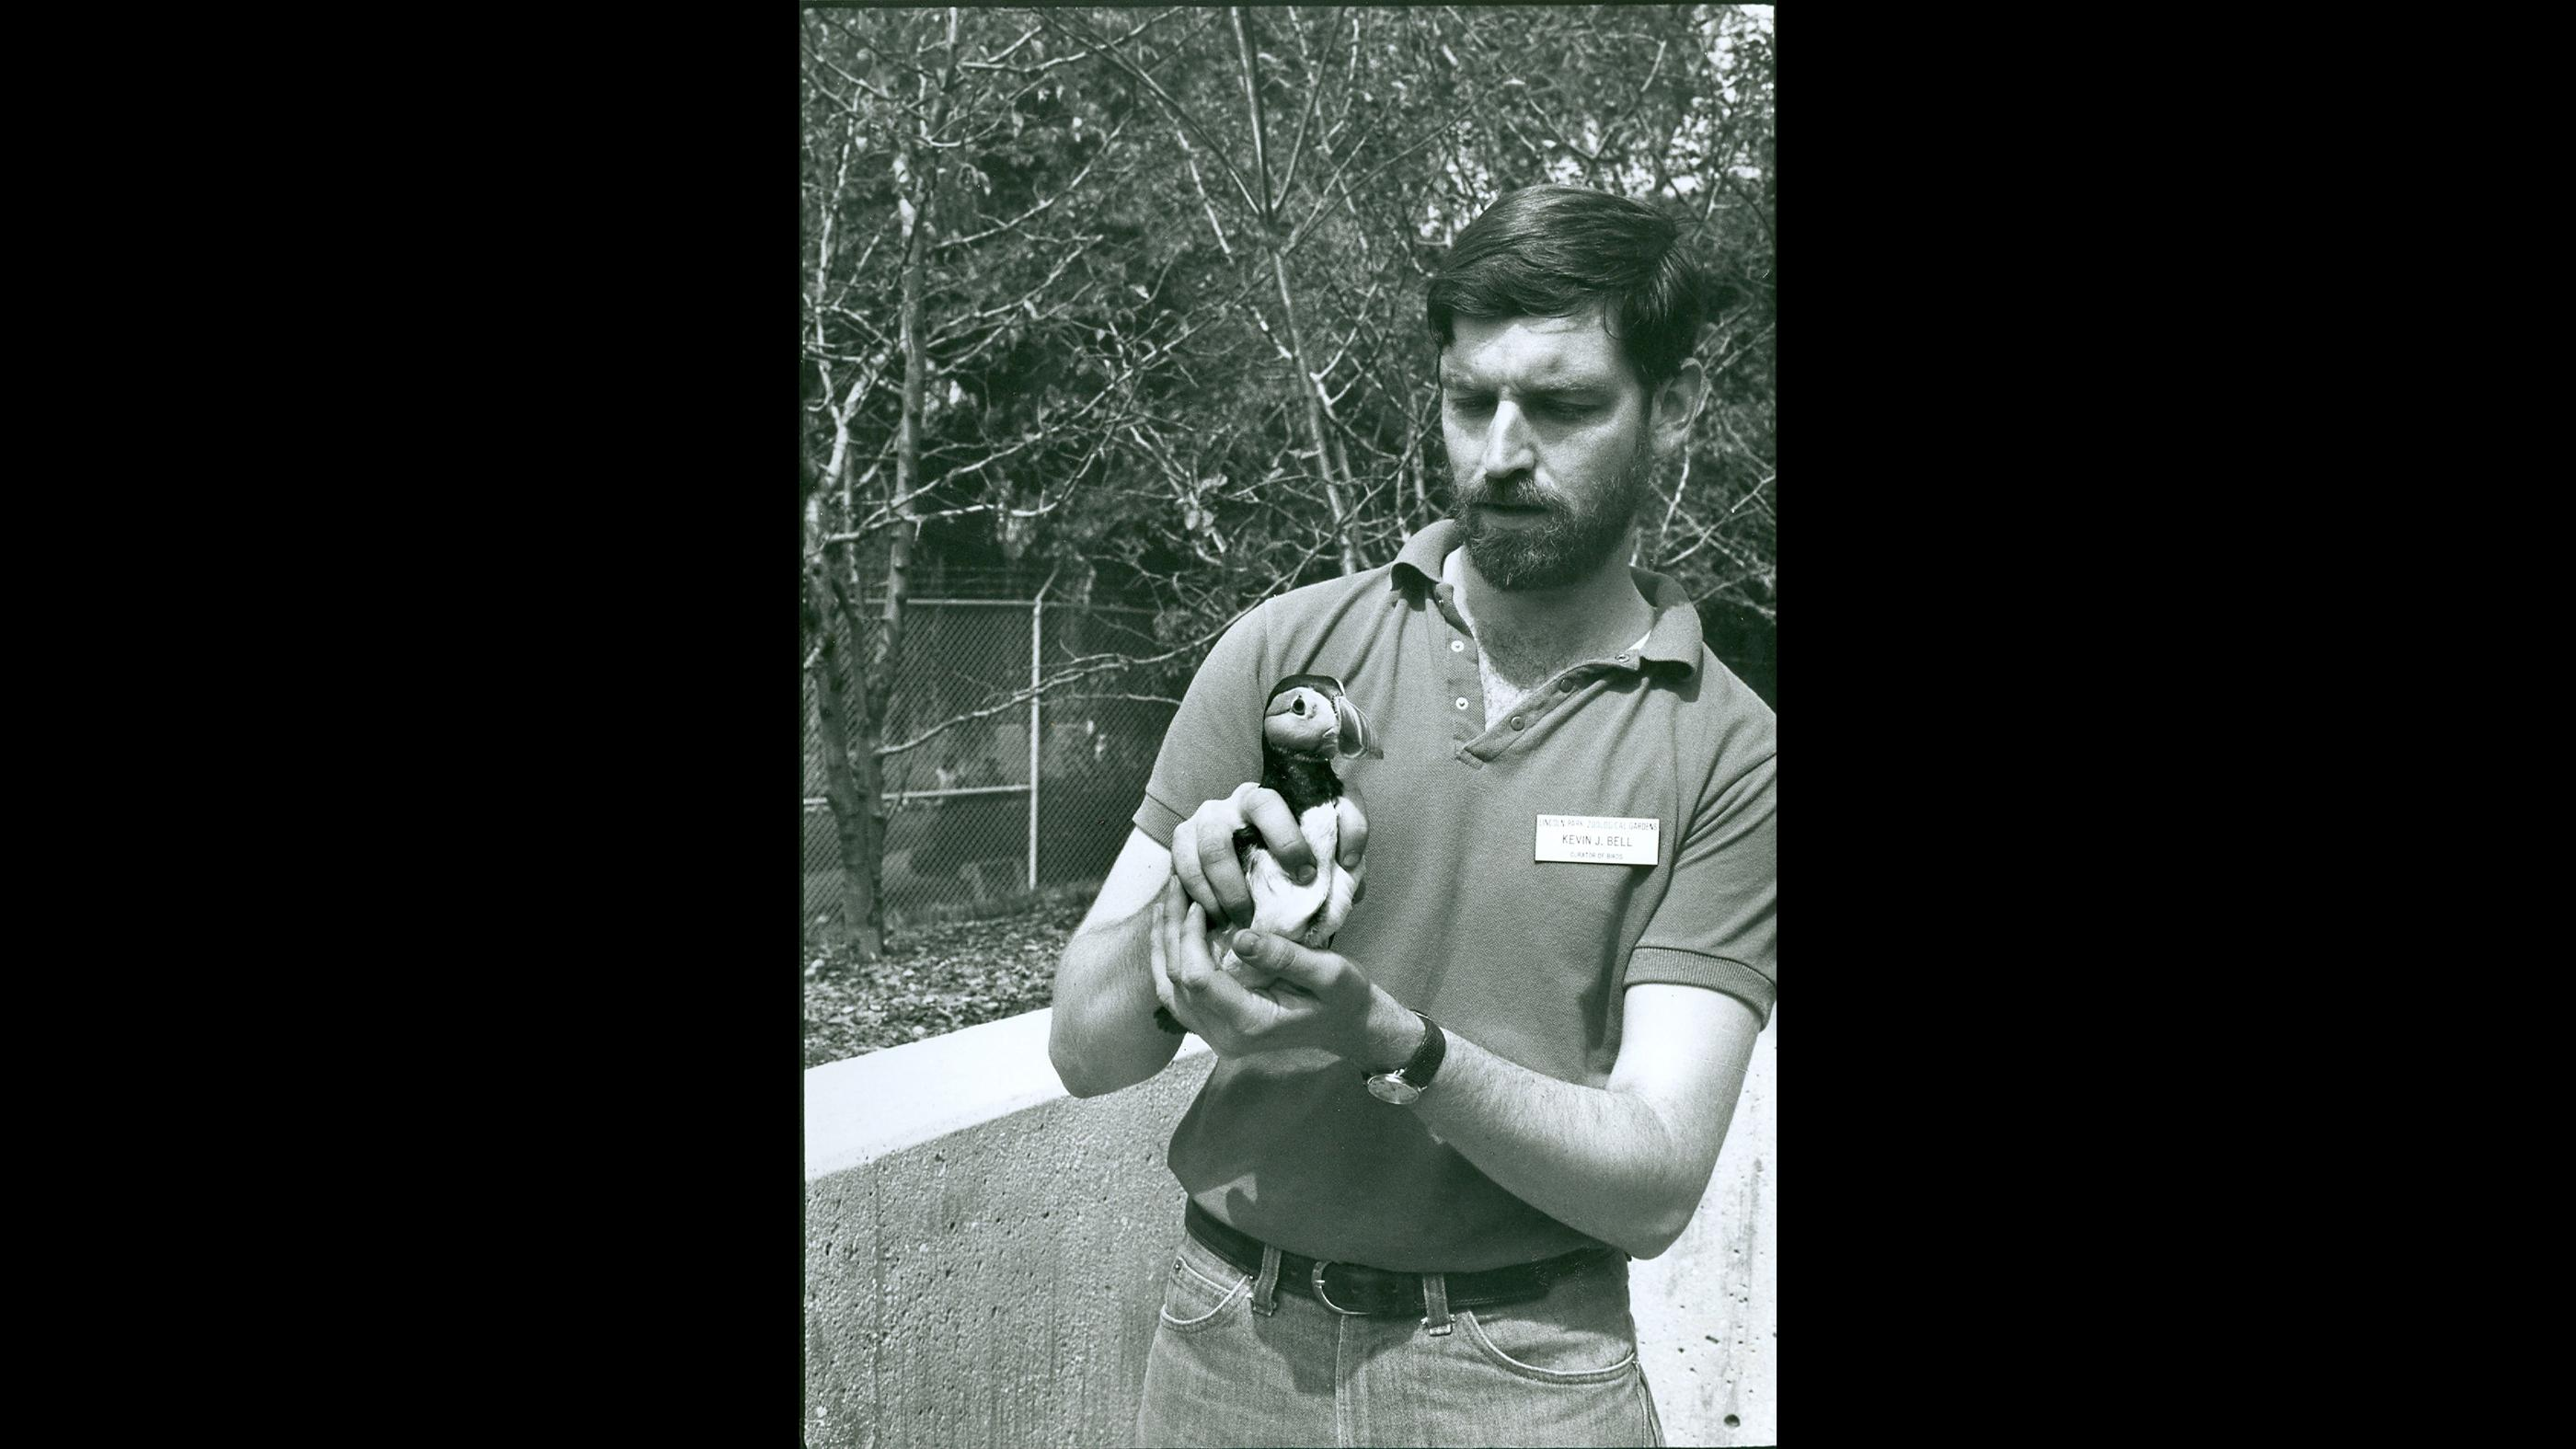 Current Lincoln Park Zoo President and CEO Kevin Bell shown here in 1981, when he was the zoo's curator of birds. (Courtesy Chicago Park District and Chicago History Museum)